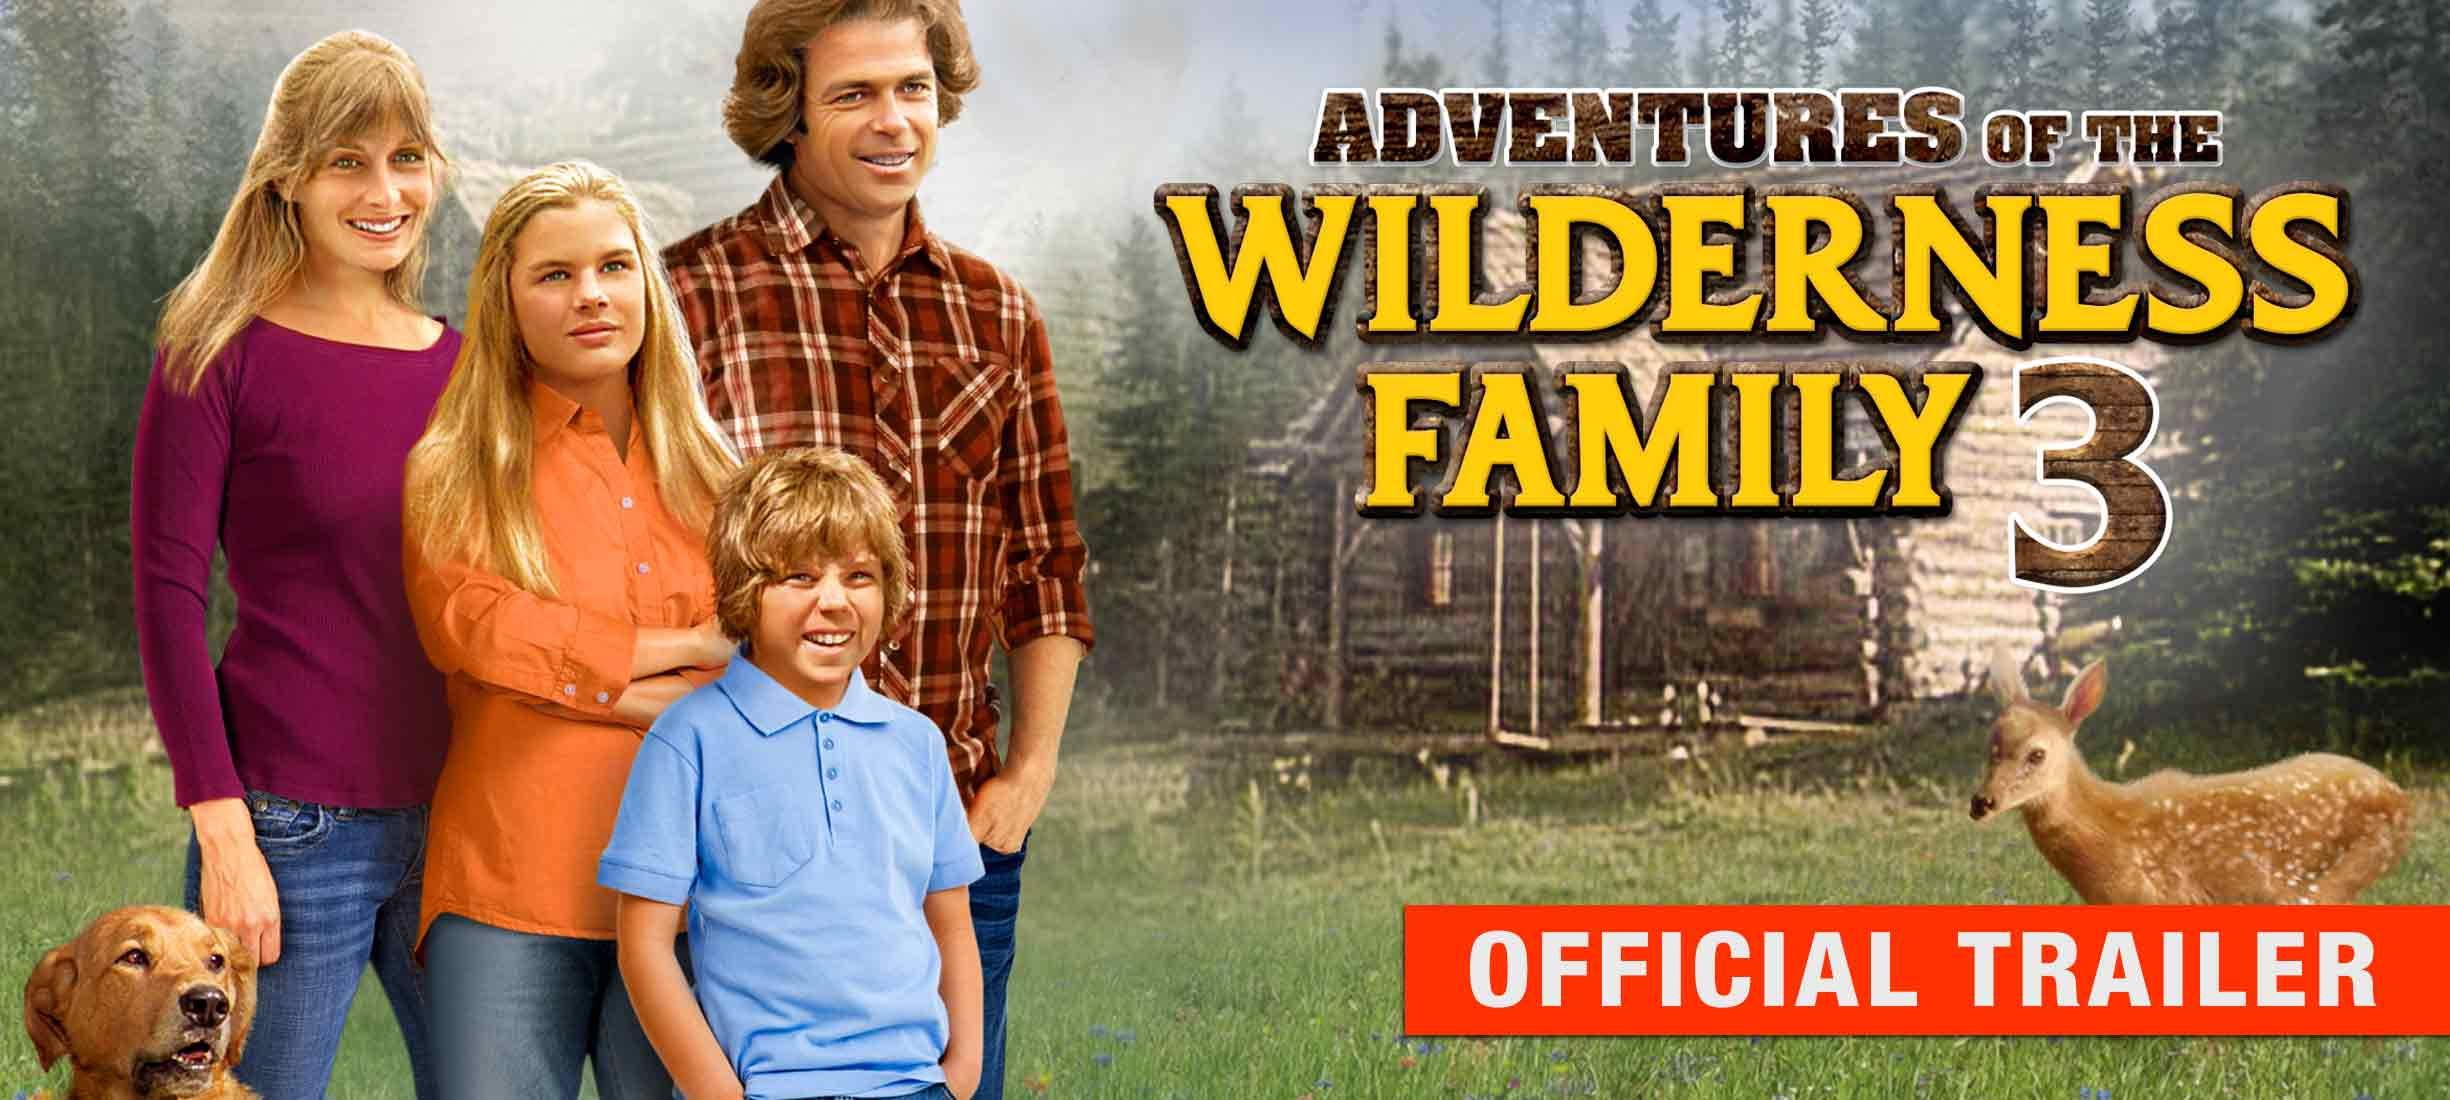 Adventures of the Wilderness Family III: Trailer